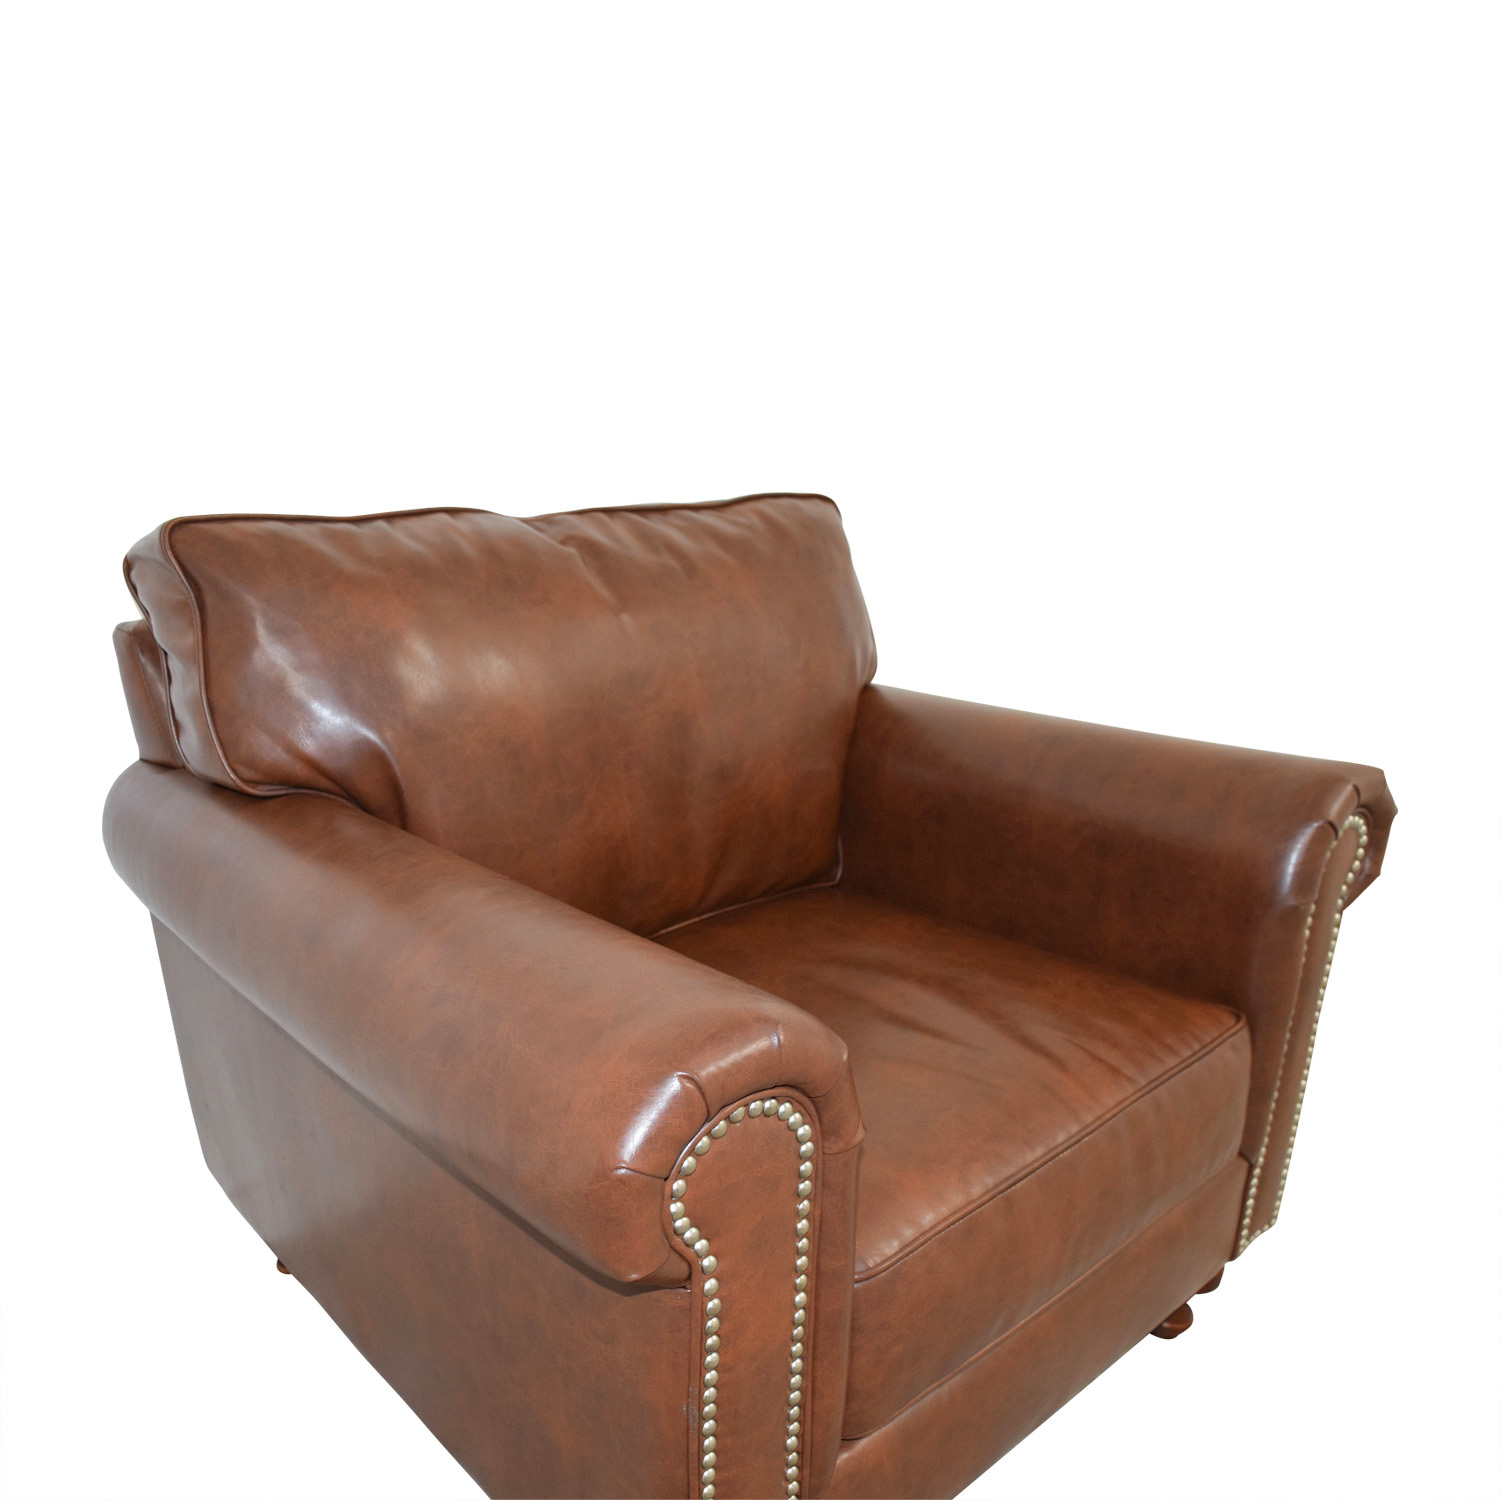 Pier 1 Imports Pier 1 Imports Alton Tobacco Brown Rolled Nailhead Armchair used